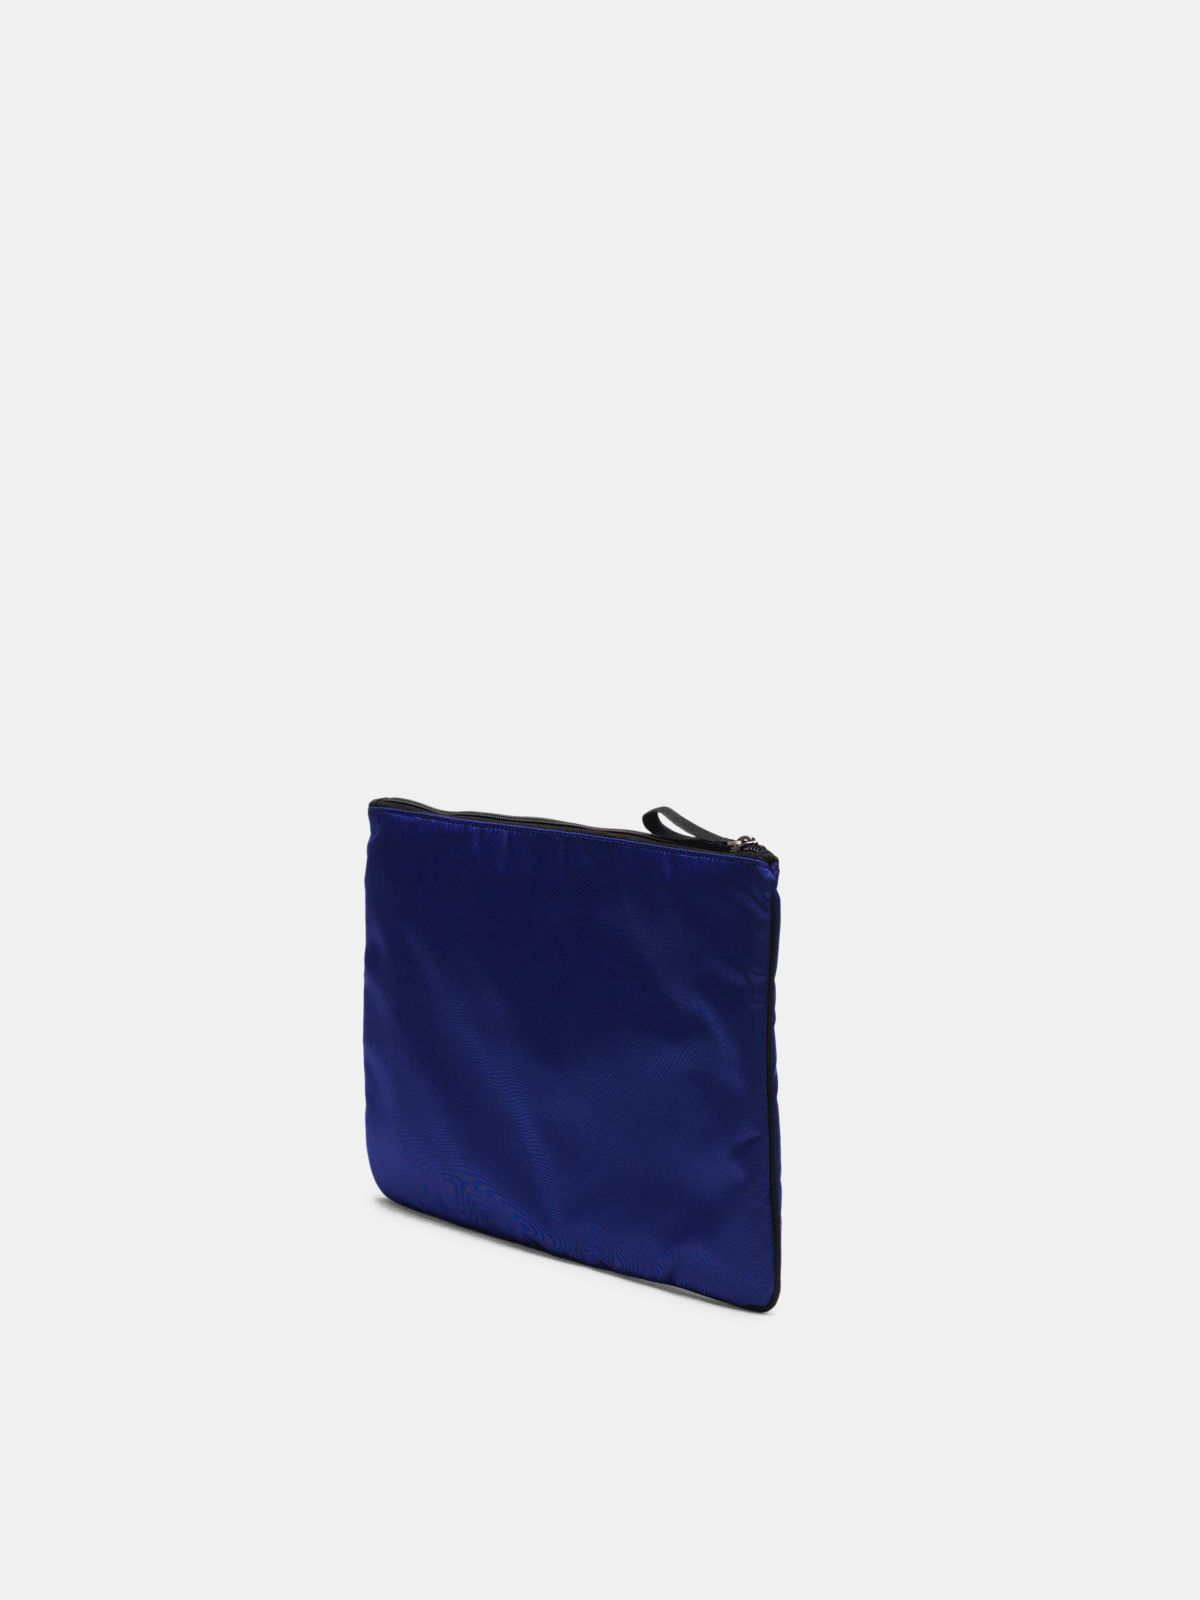 Golden Goose - Large royal blue nylon Journey pouch in